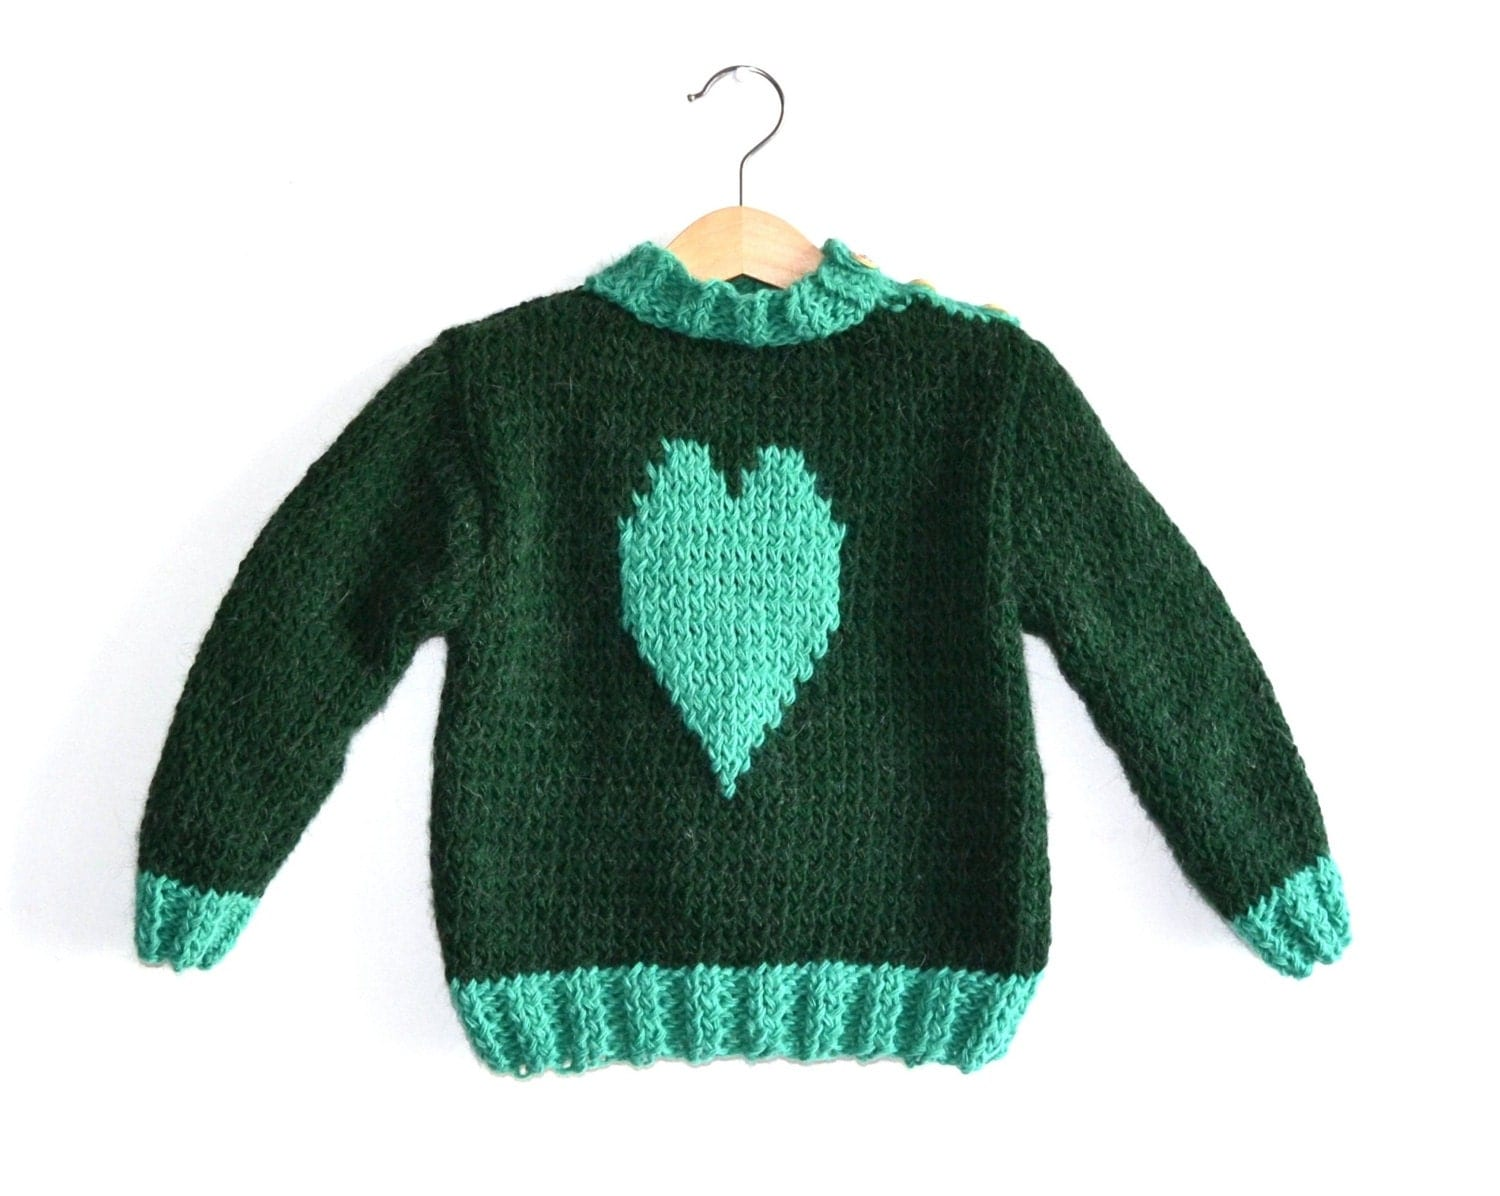 Hand Knitted Sweater Patterns : Hand Knitted Baby Sweater Heart Pattern by NeslisHandcrafts